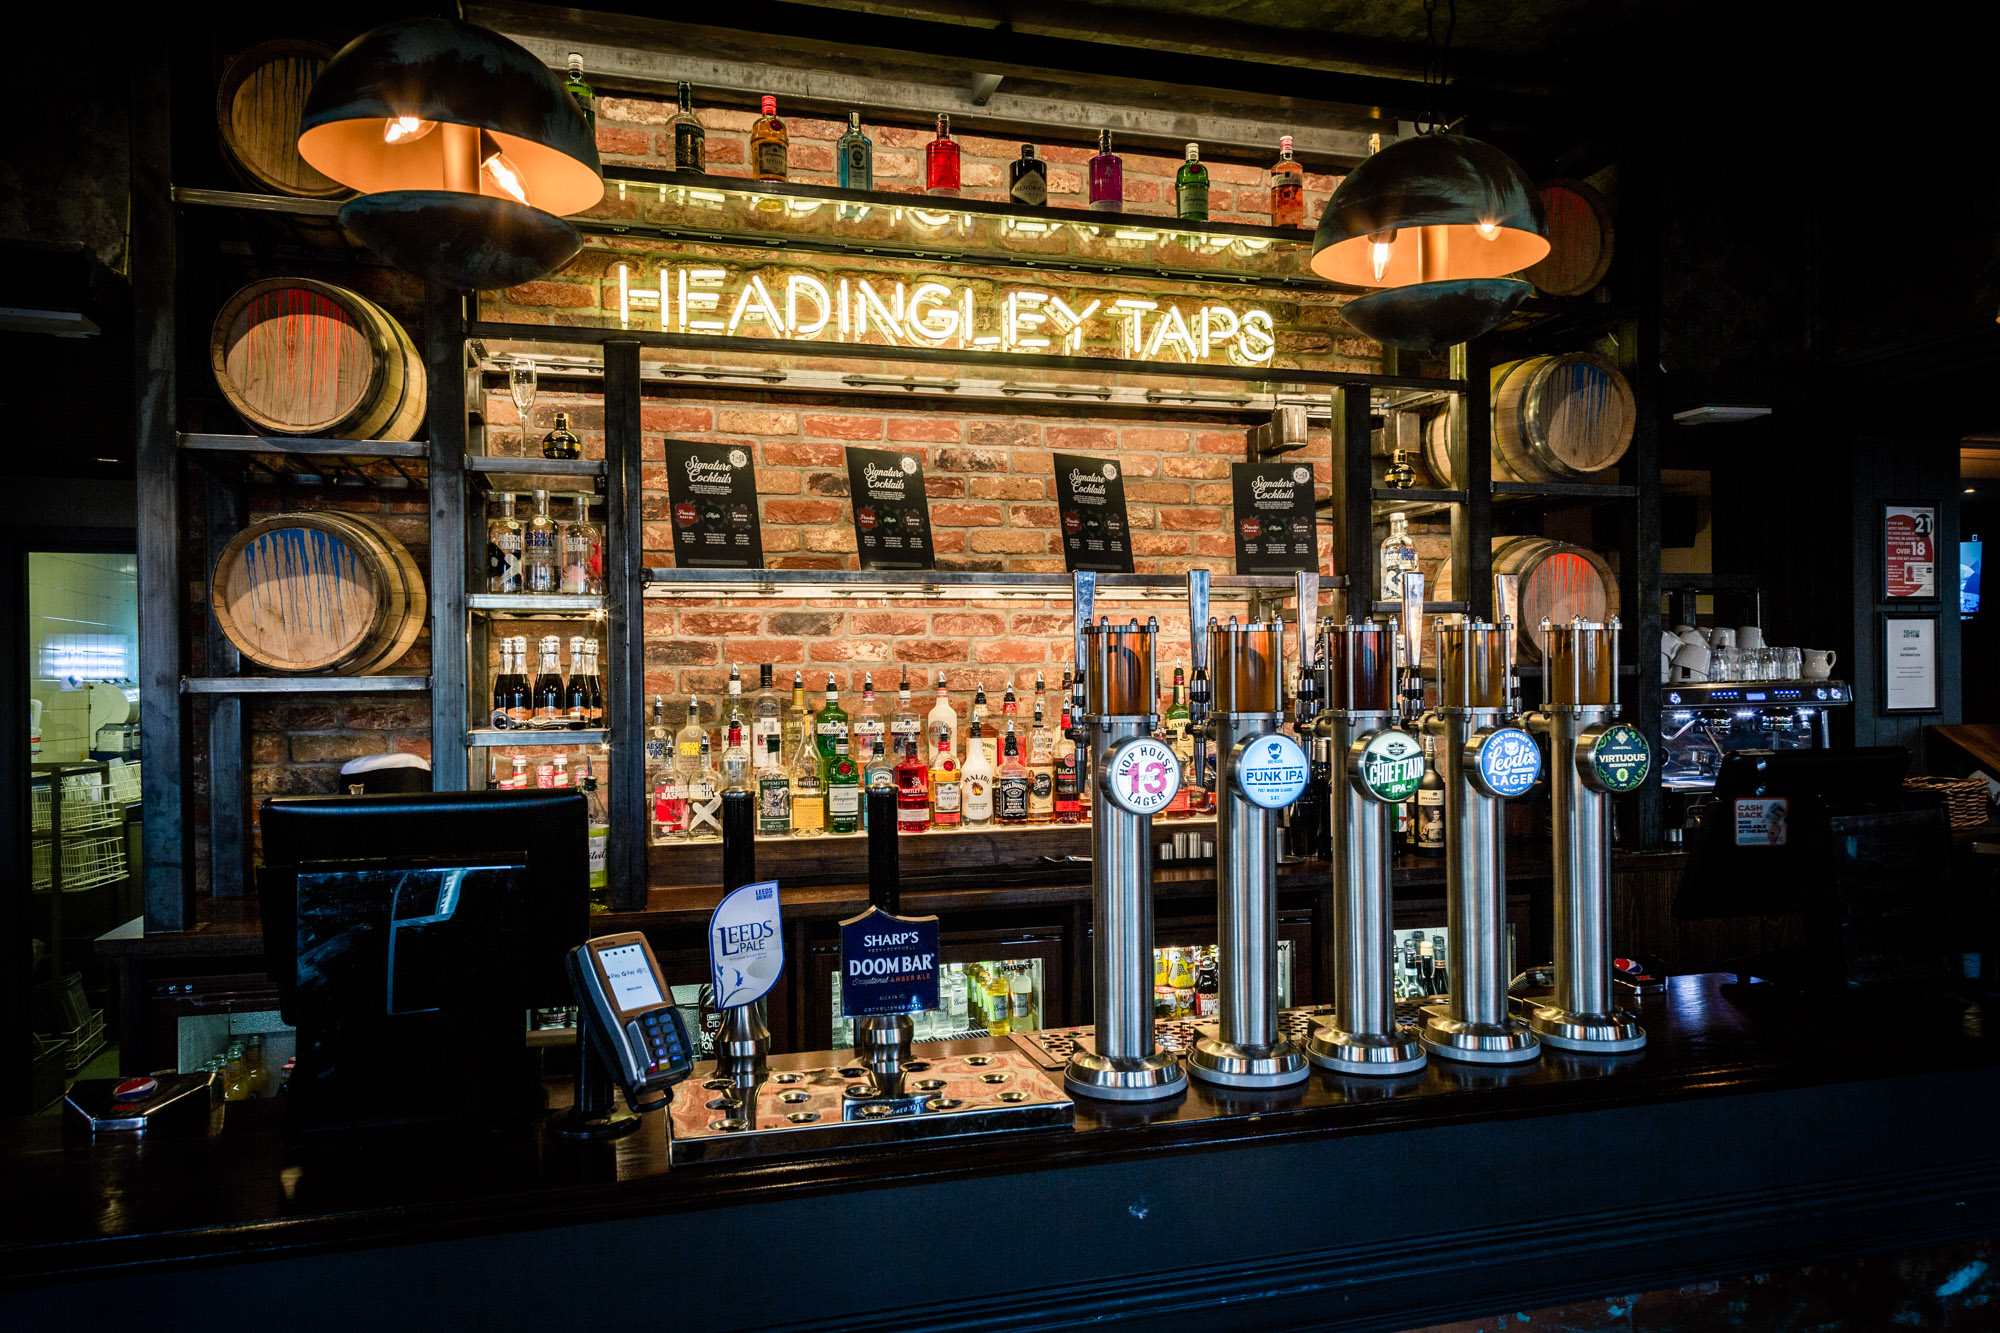 14.03.19 Headingley Taps (24 of 81).jpg